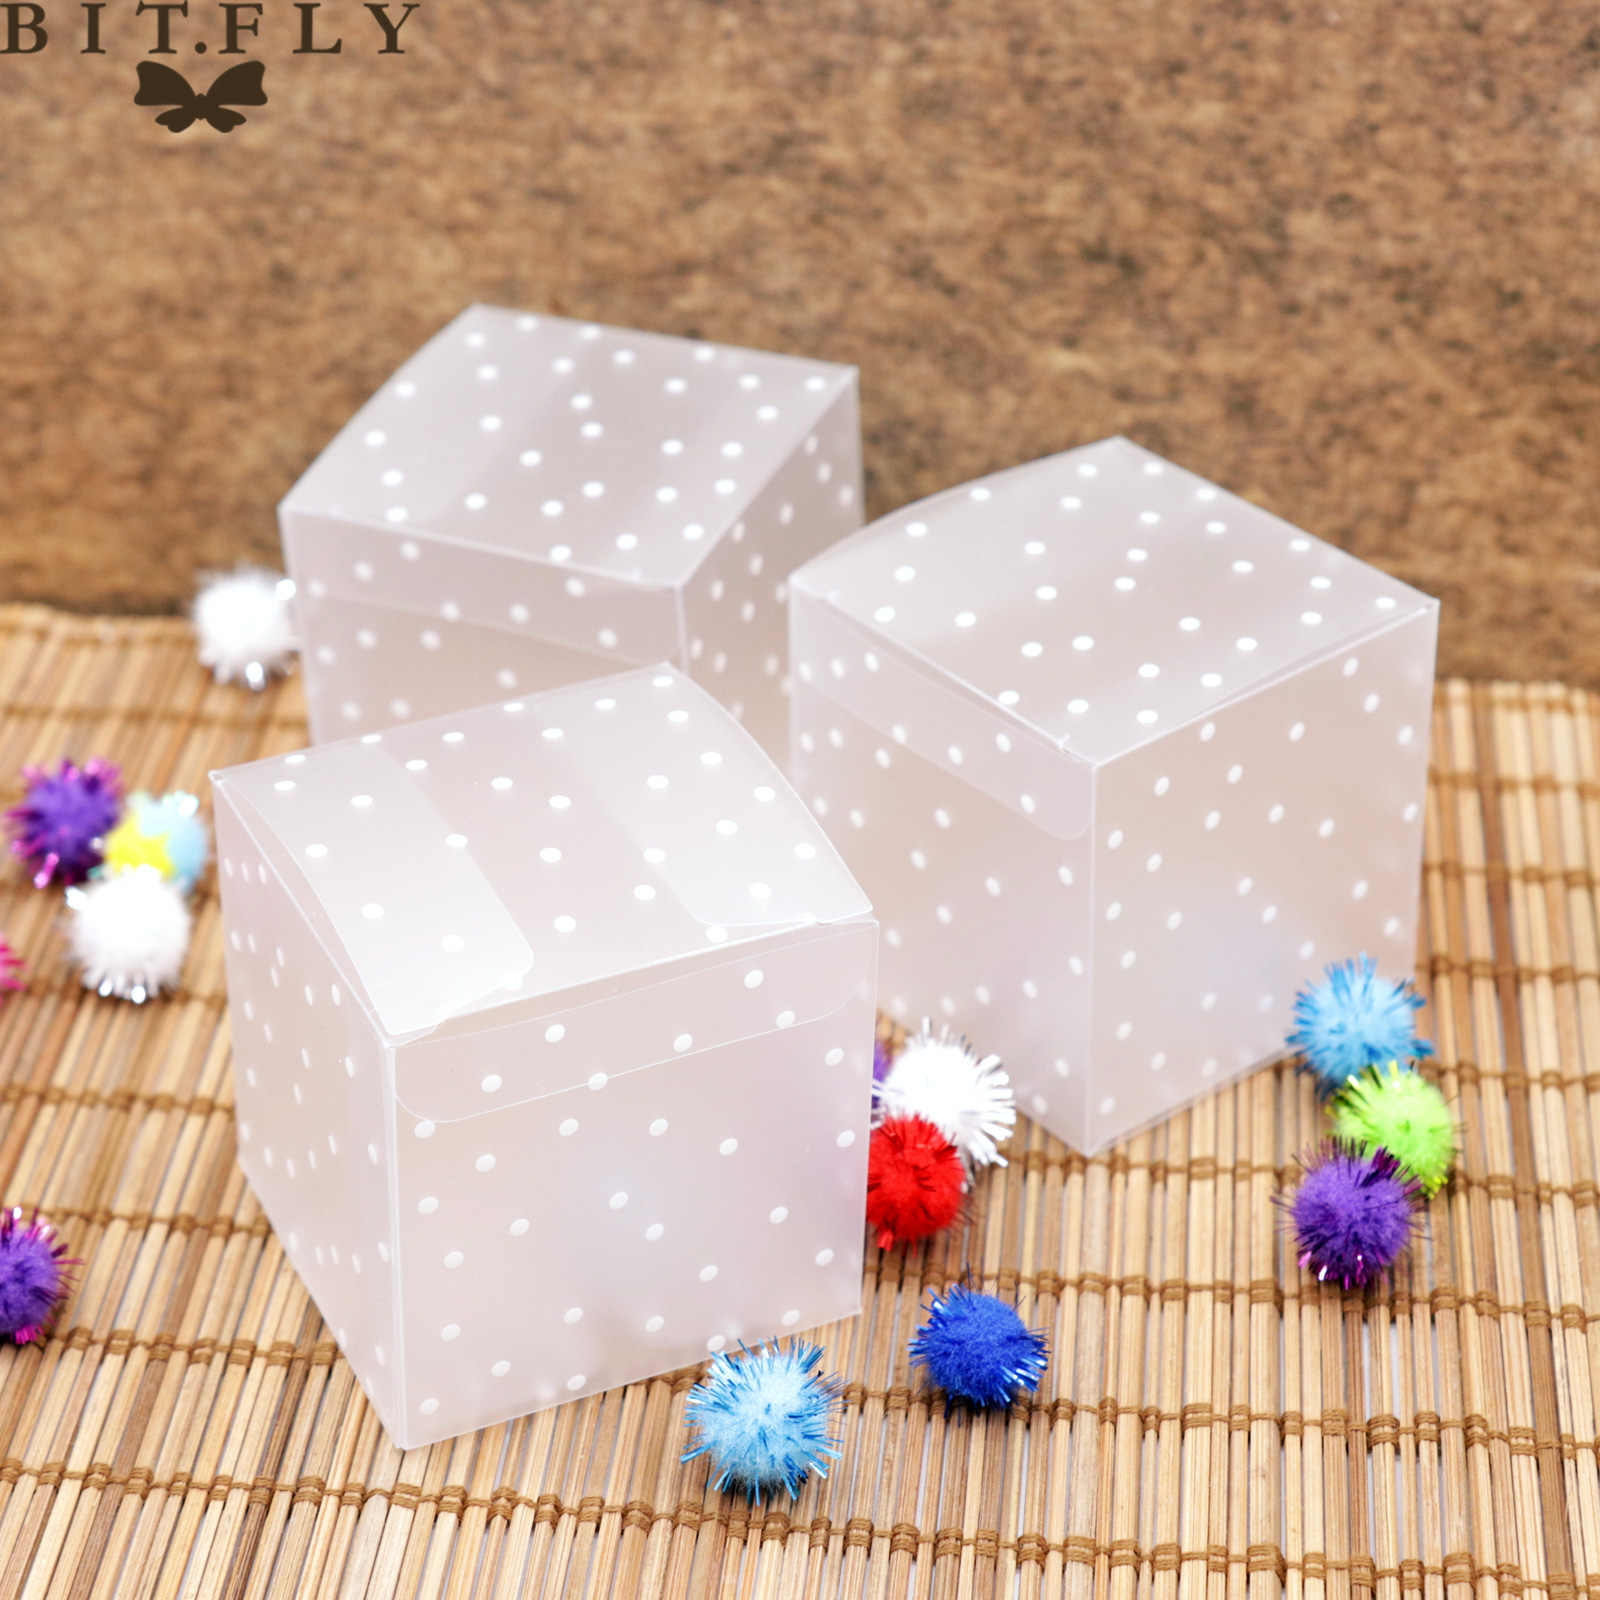 10pcs Square PVC Transparent Dot Candy Box Chocolate Snacks Sweet Gift Box Cube Wedding Favor Mariage Birthday Party Supply